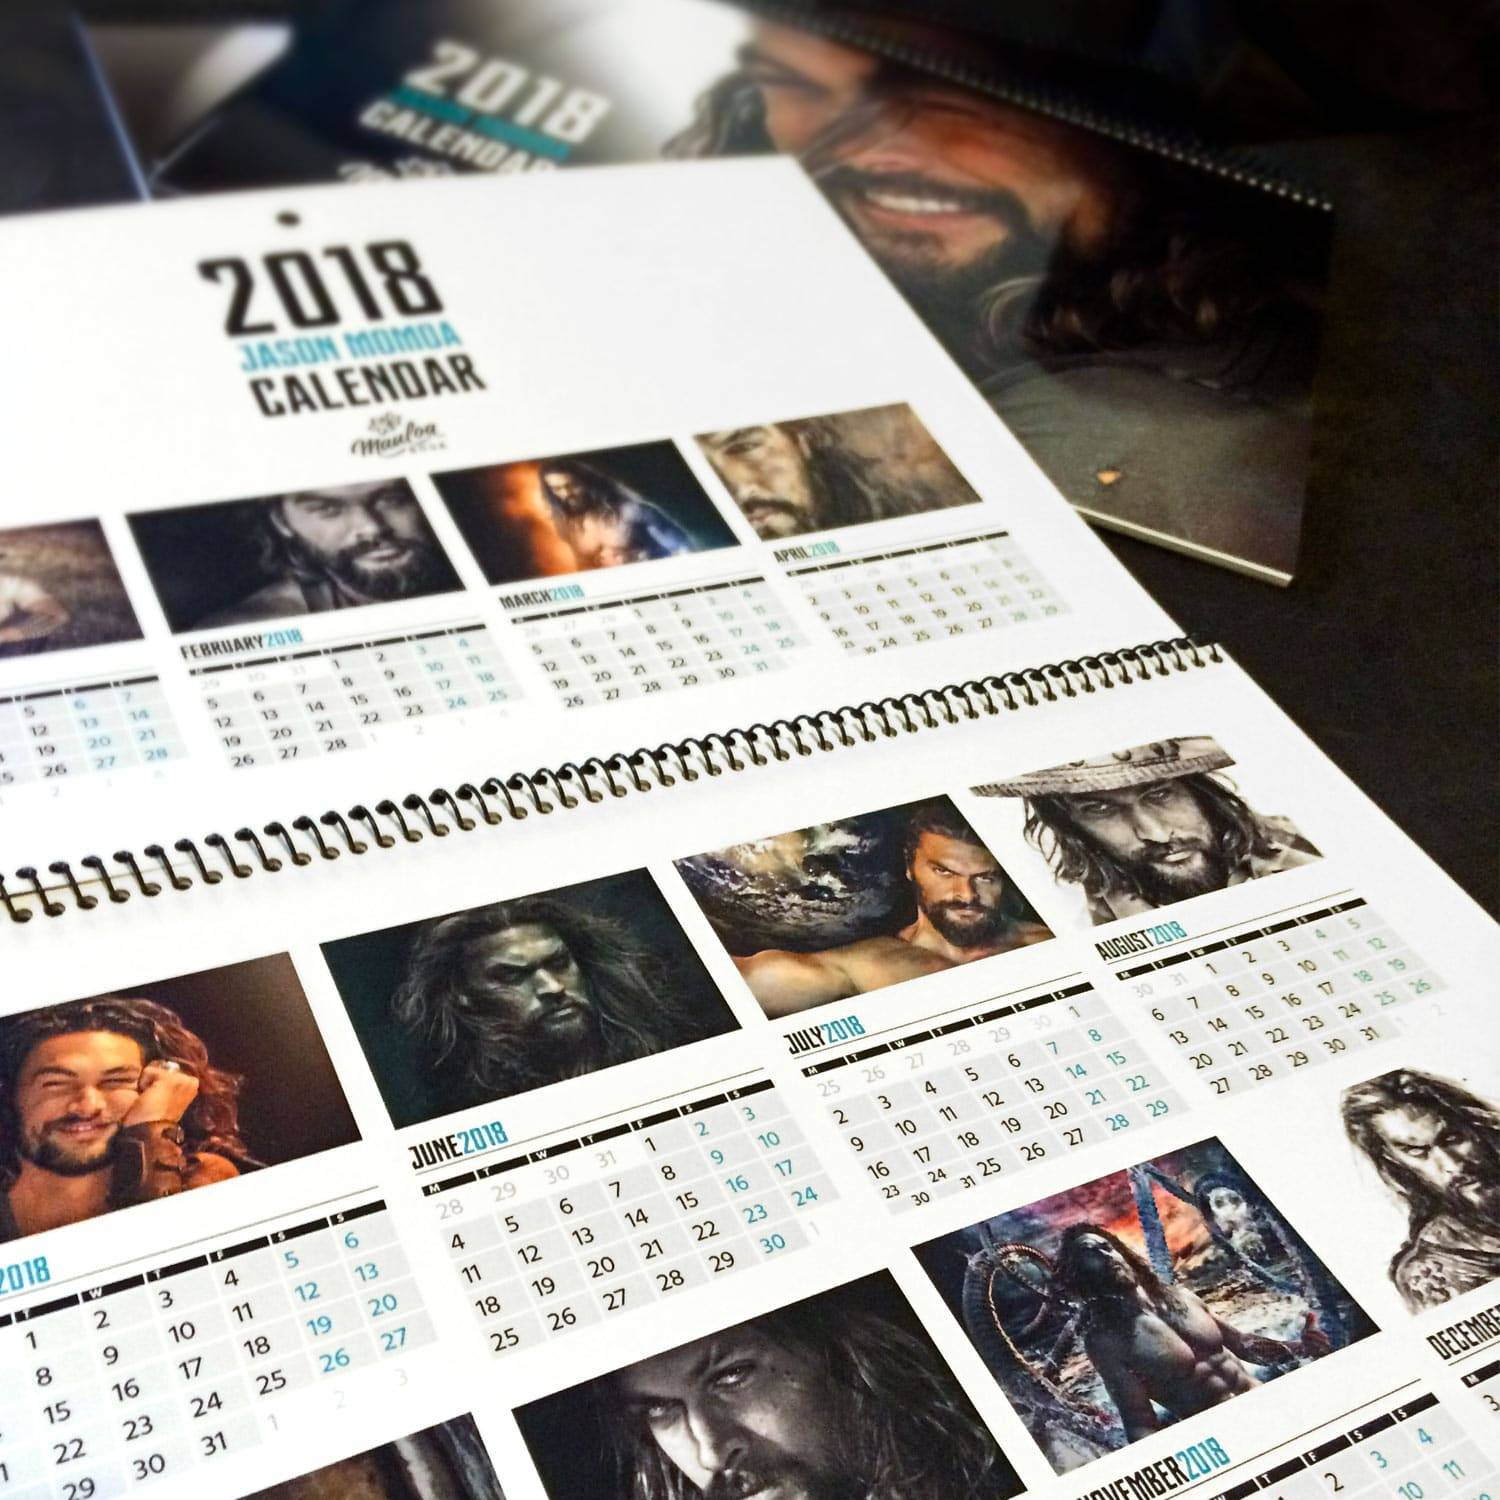 Jason Momoa Interview: Exclusive Jason Momoa Calendar Giveaway With MauLoa Designs